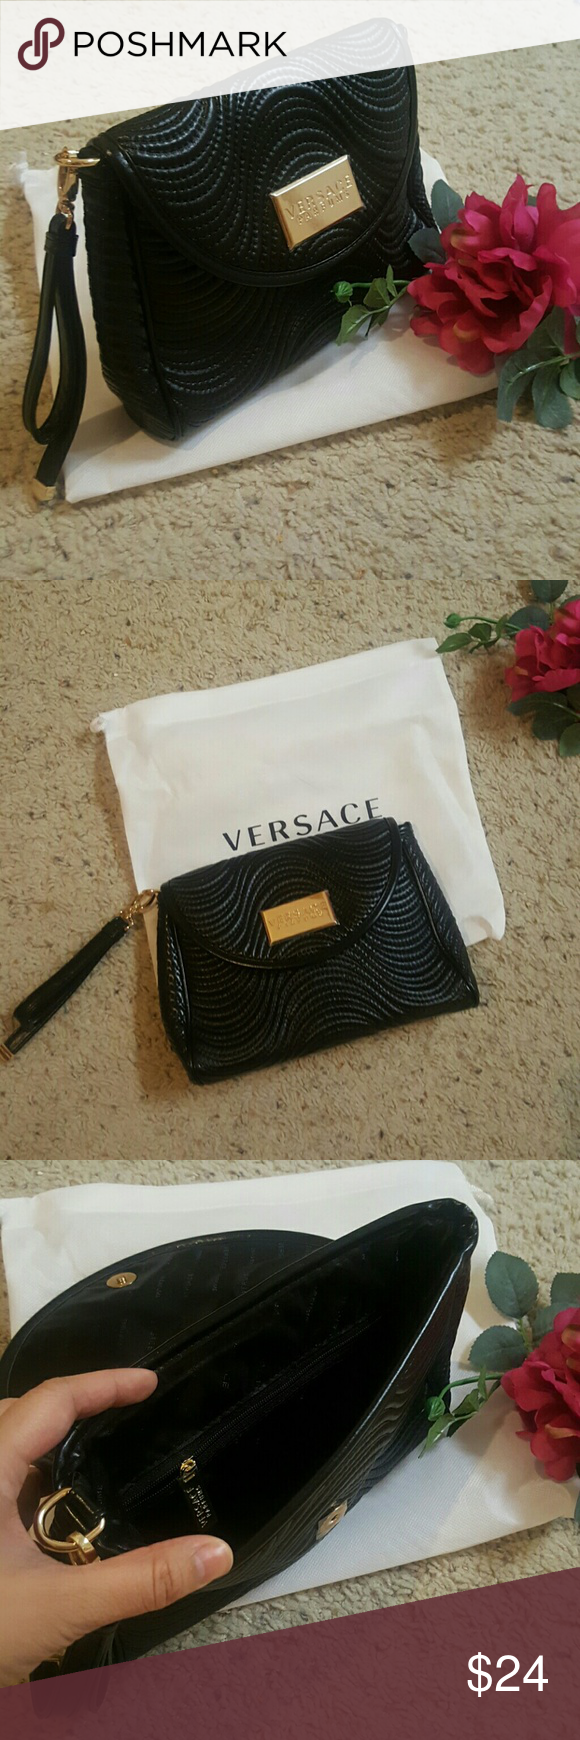 Versace quilted clutch Quilted clutch. Magnetic snap closure. Gold zipper and emblem. Extra zippered compartment inside. Very roomy interior. Brand new and comes with dust bag. Versace Bags Clutches & Wristlets